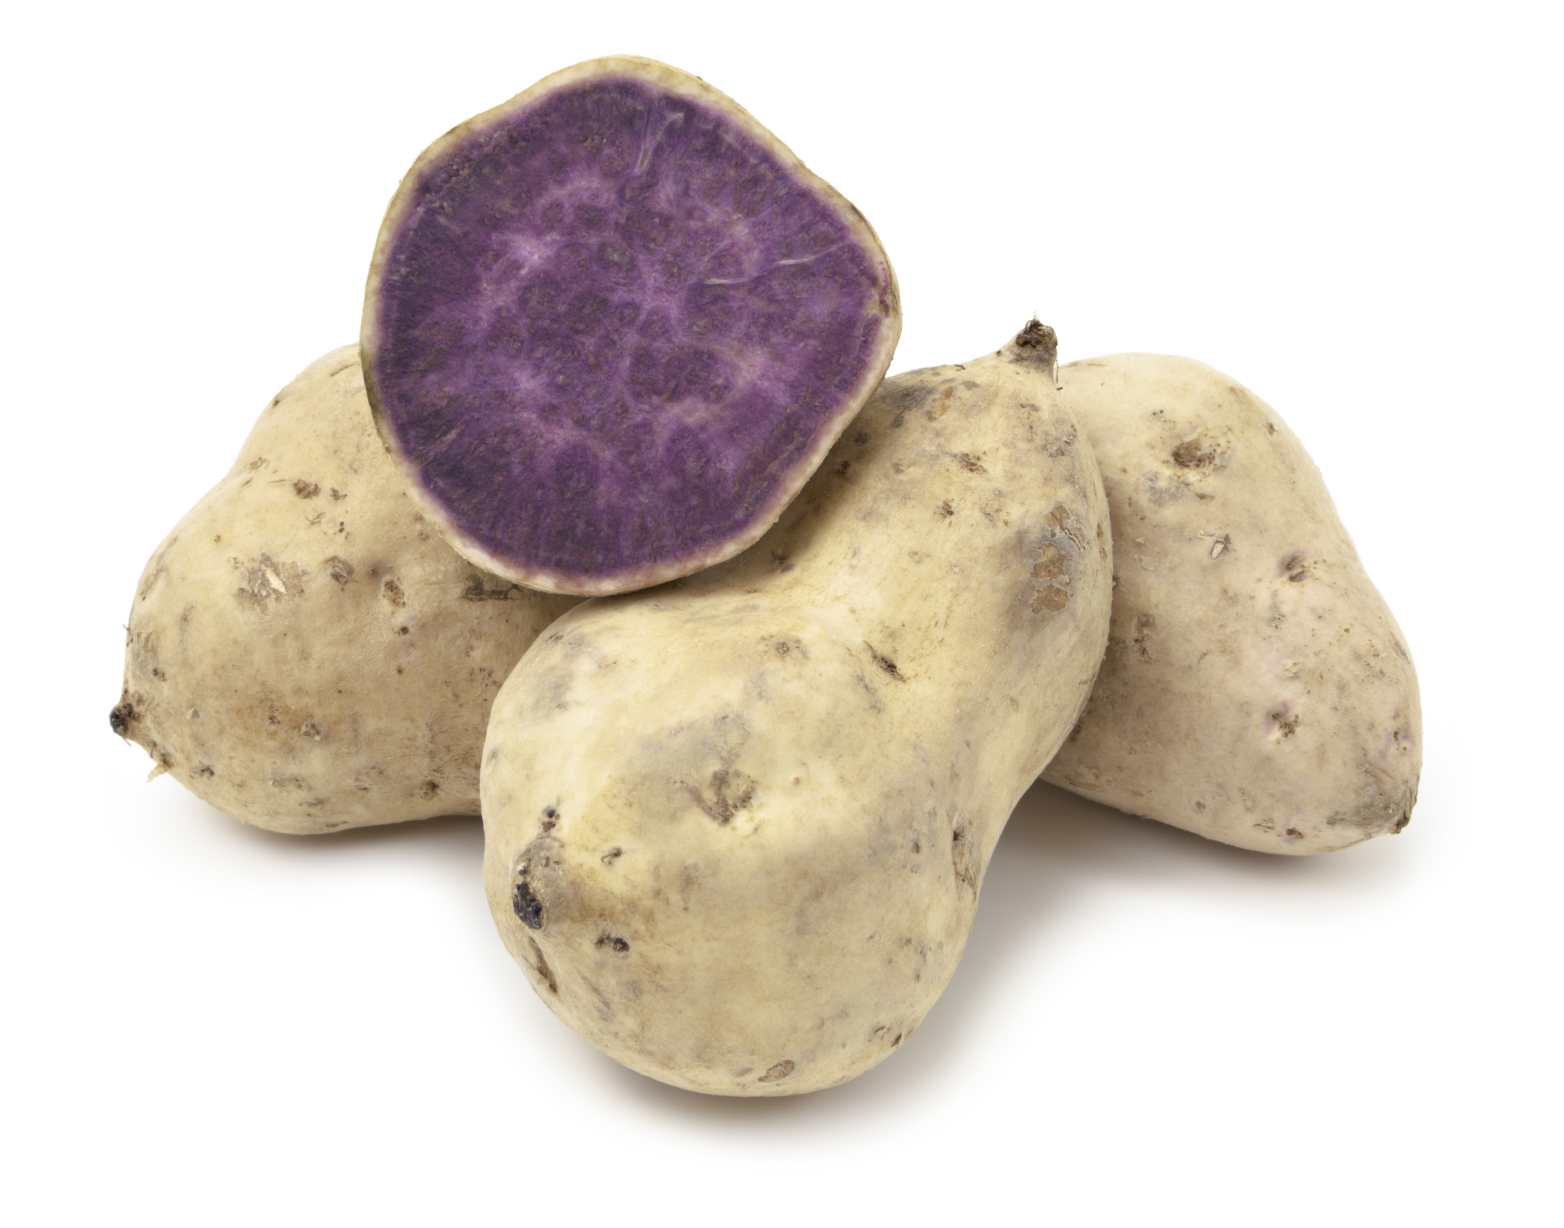 Frieda's Specialty Produce - Okinawan Sweet Potatoes